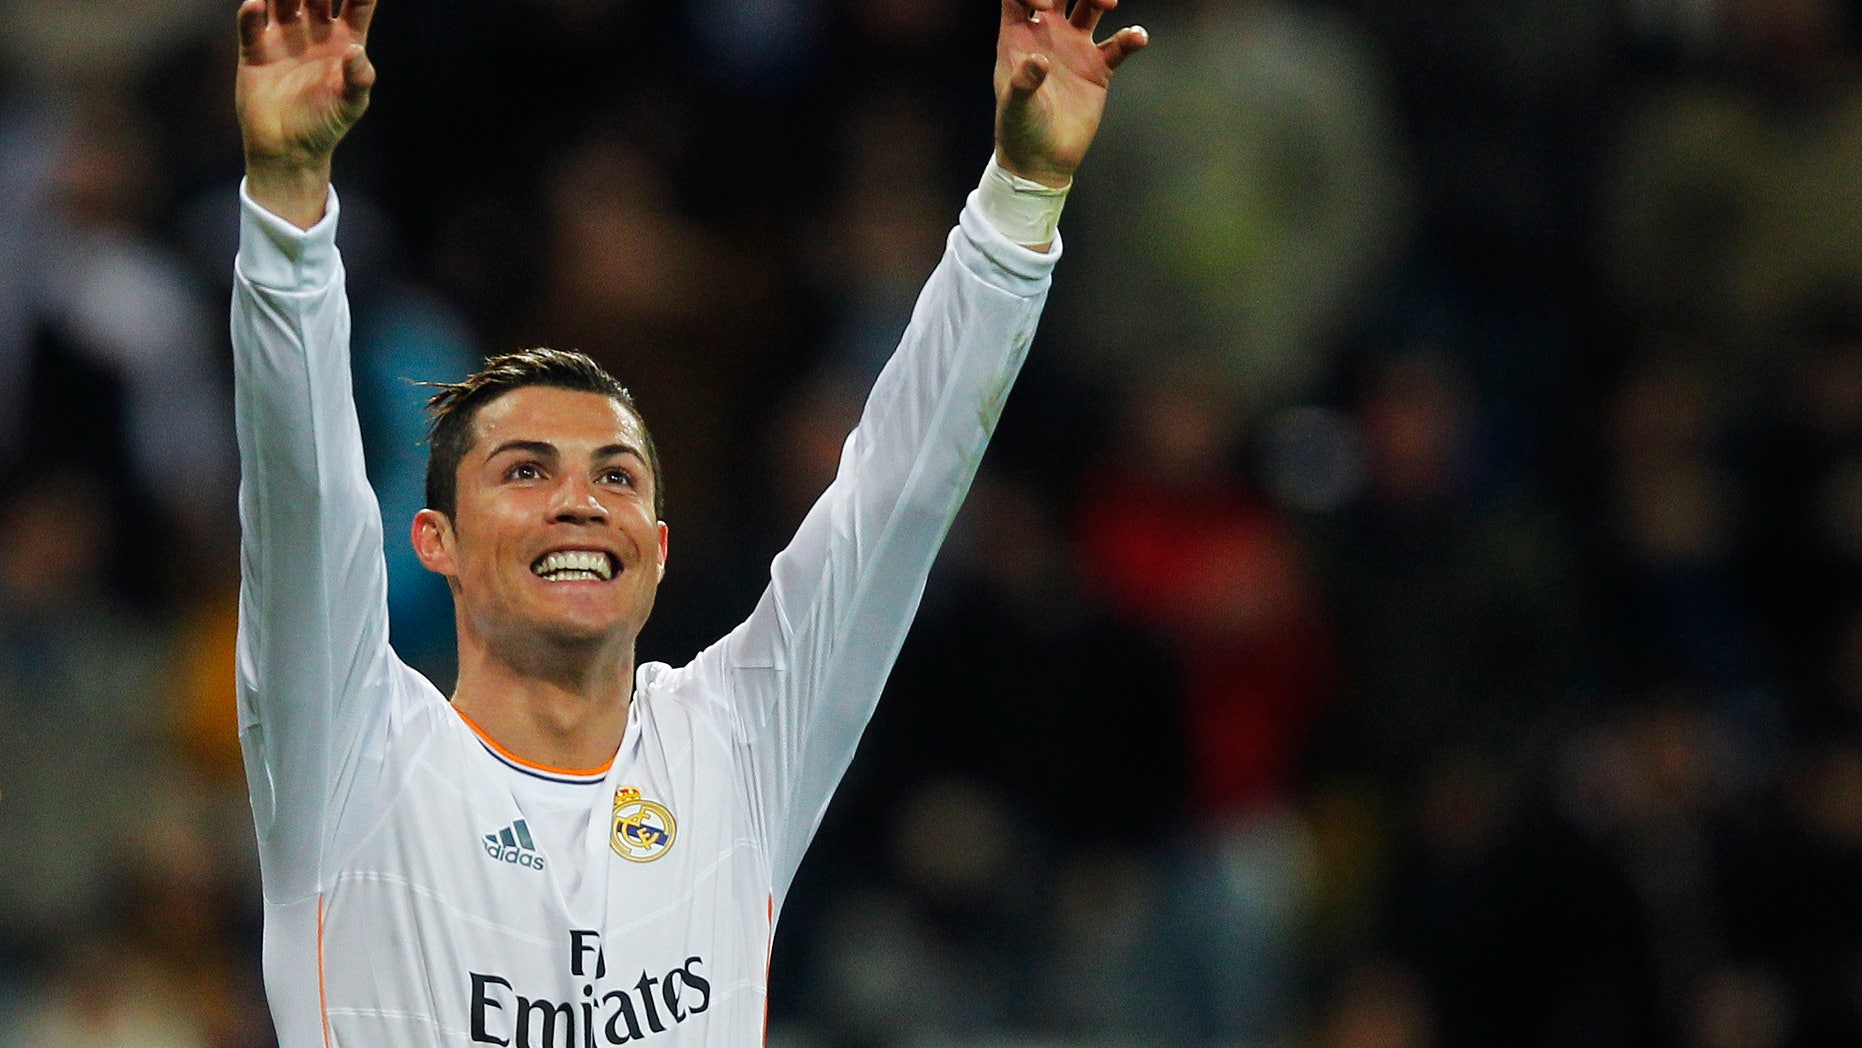 FILE - The Jan. 6, 2013 file photo shows Real Madrid's Cristiano Ronaldo from Portugal celebrating his goal during a Spanish La Liga soccer match between Real Madrid and Celta at the Santiago Bernabeu stadium in Madrid. Ronaldo is one of the three candidates as the world's best soccer player  to be awarded at the FIFA Ballon d'Or gala on Monday, Jan 13, 2014. (AP Photo/Andres Kudacki)